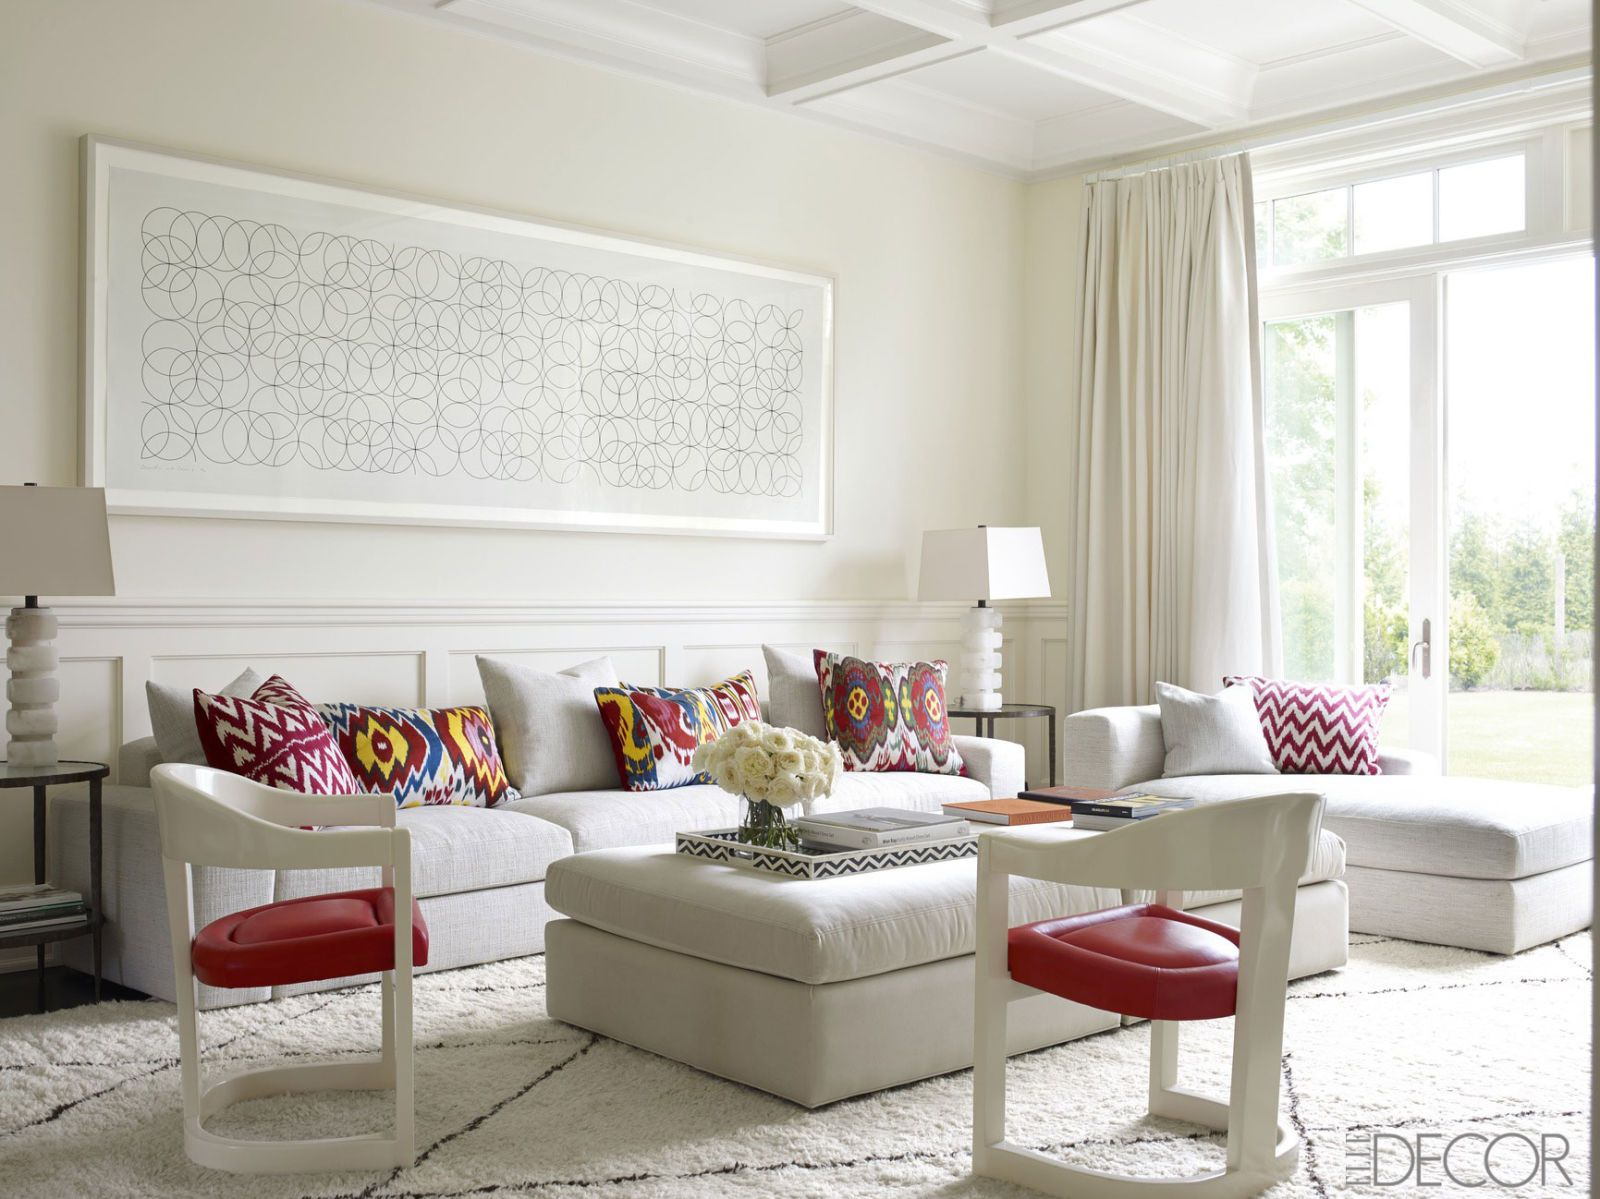 11 Of The Most Beautiful Rooms In The Hamptons | Bridget riley ...